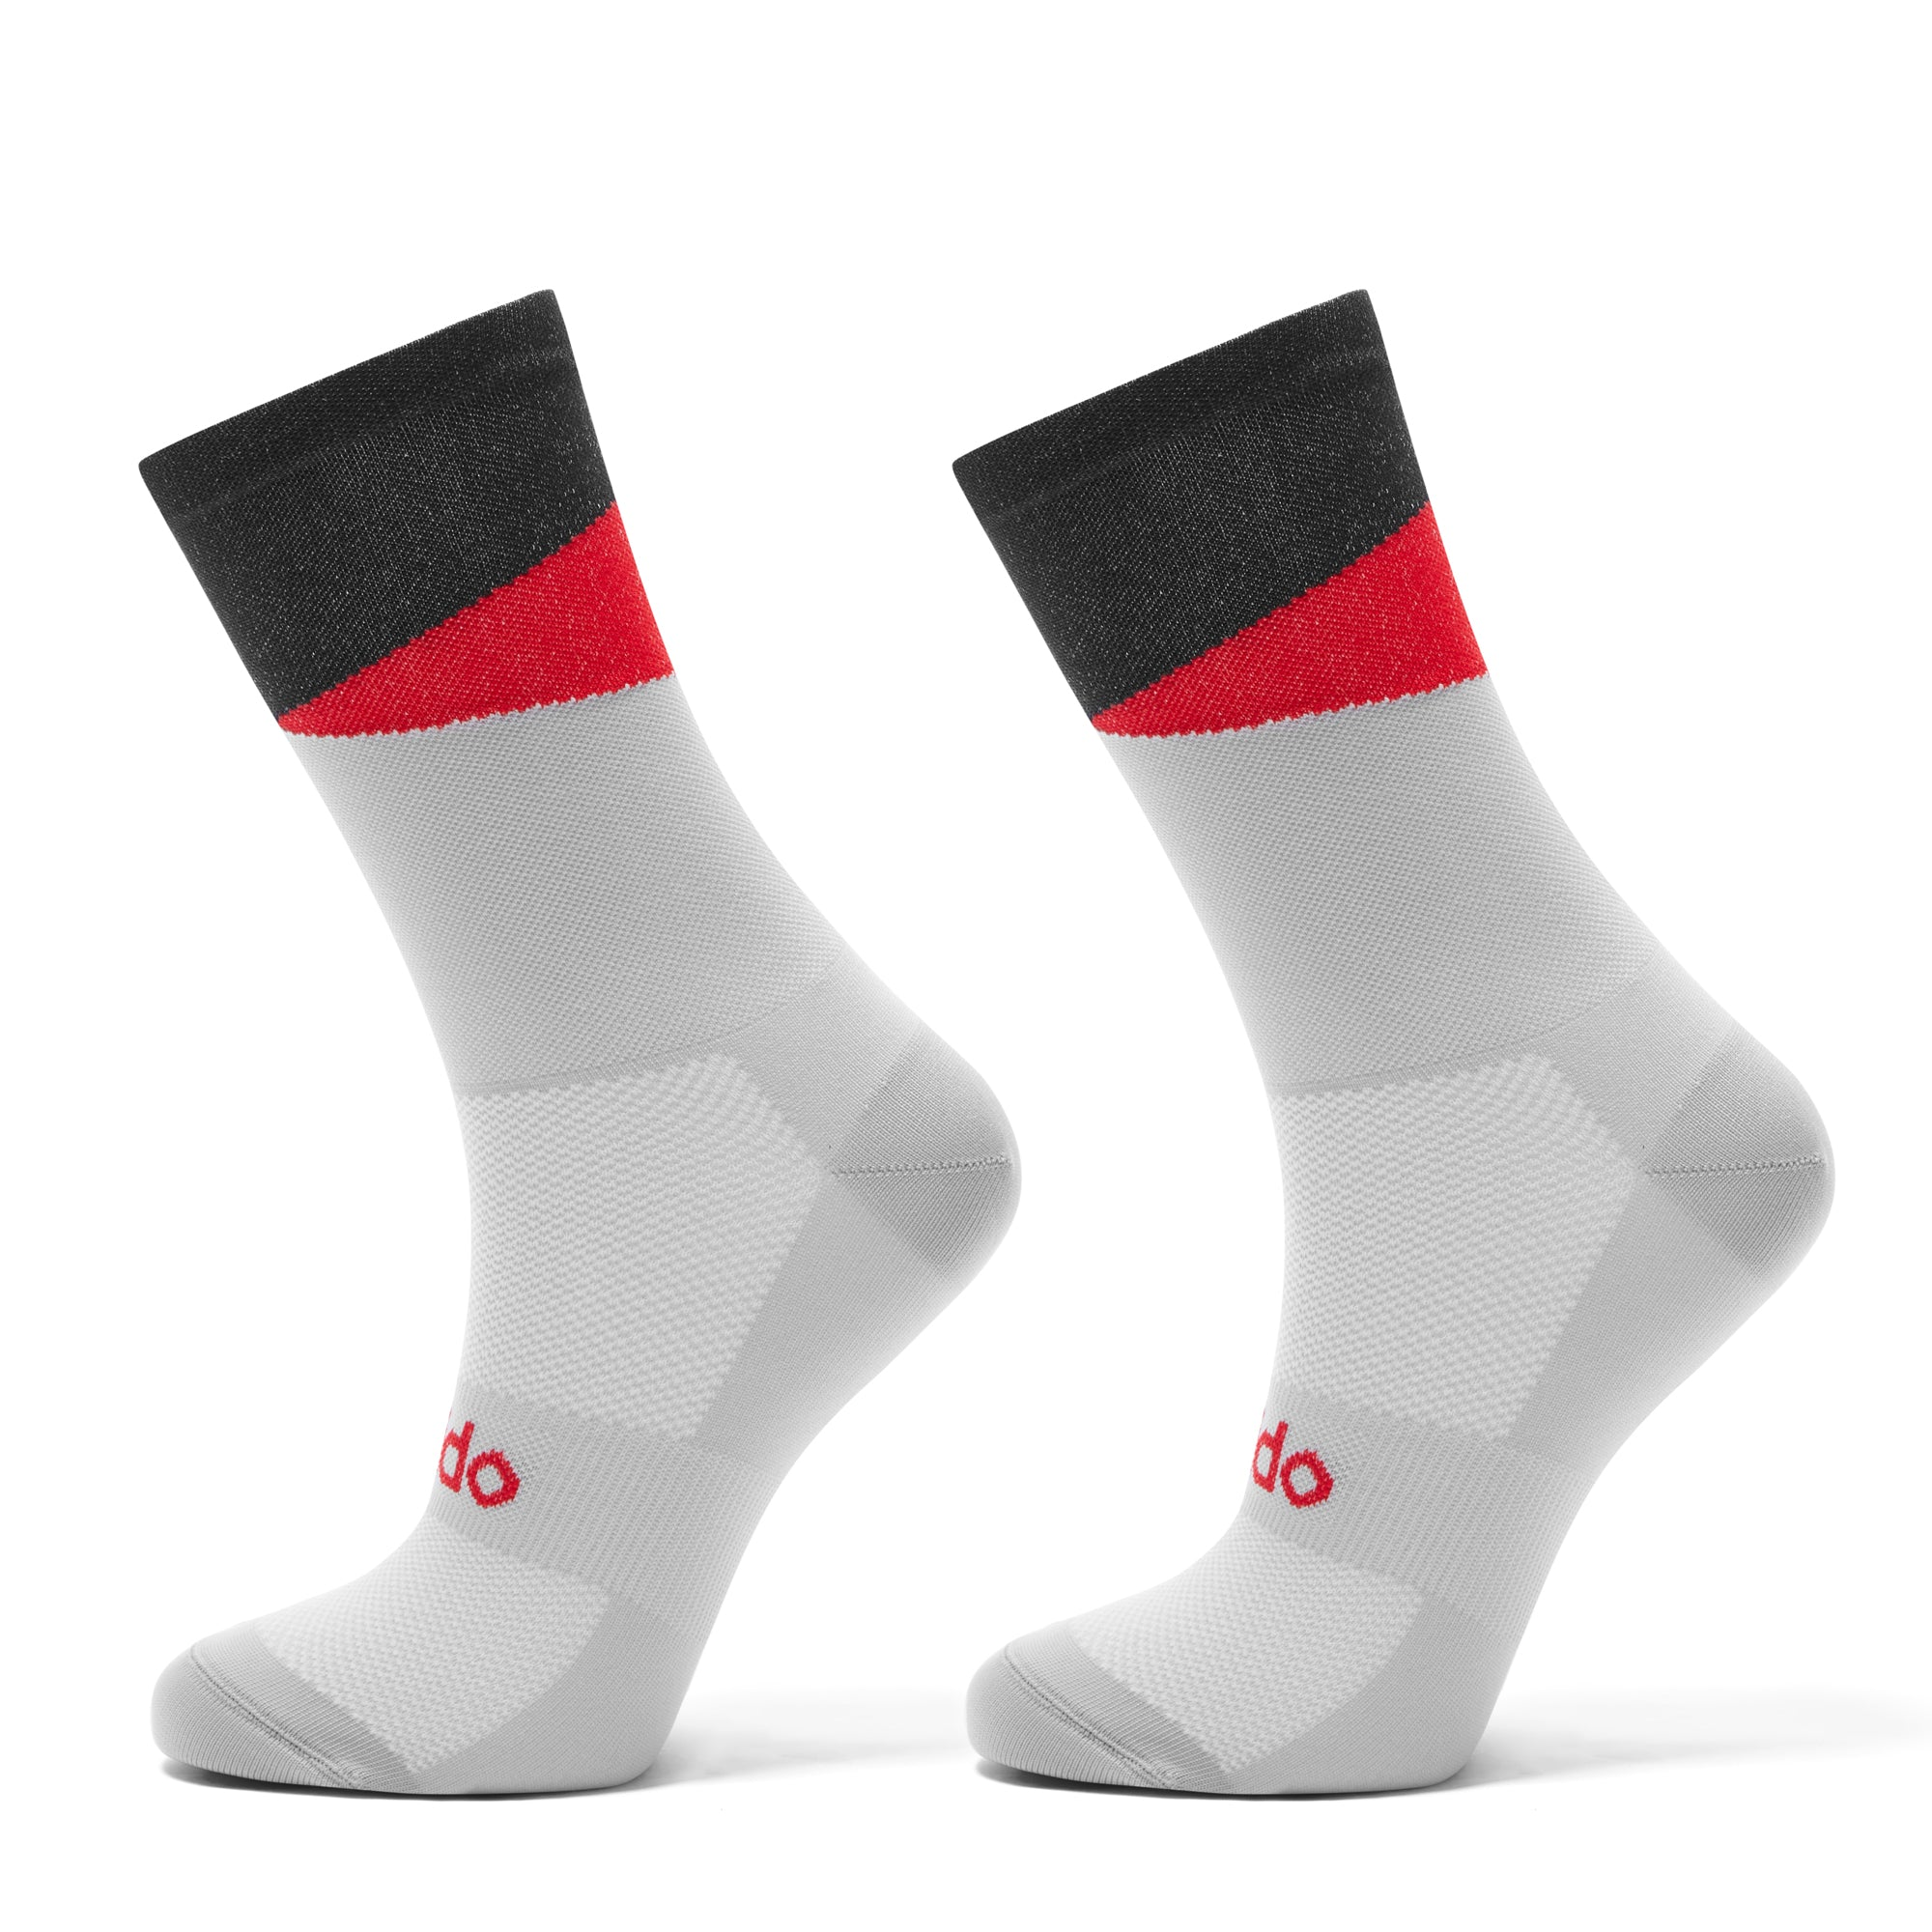 Black and Red Cycling Socks designed to look like cats eyes